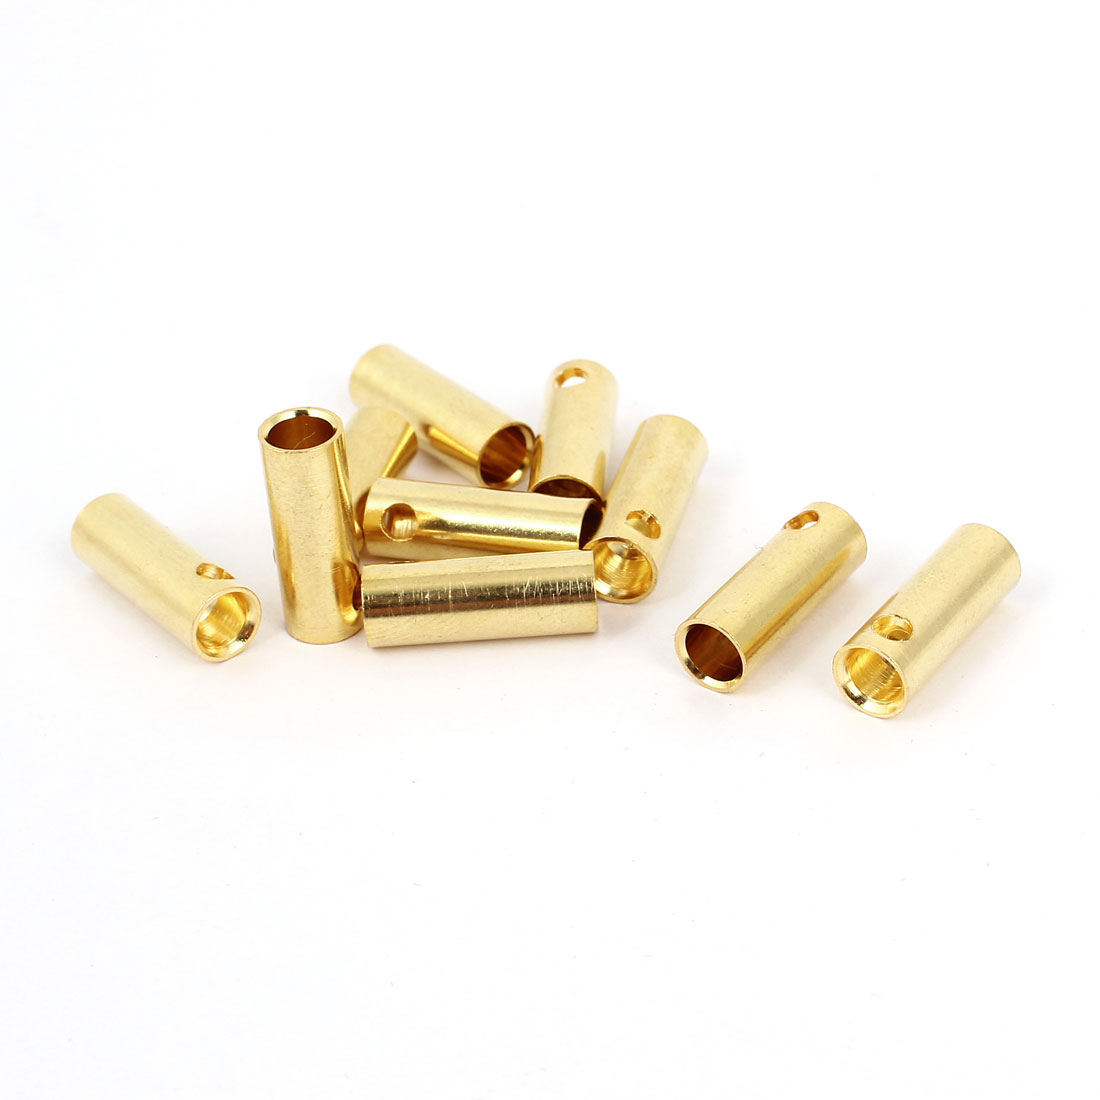 10 Pcs Gold Tone 5mm Male Banana Connector for RC Motor ESC Battery